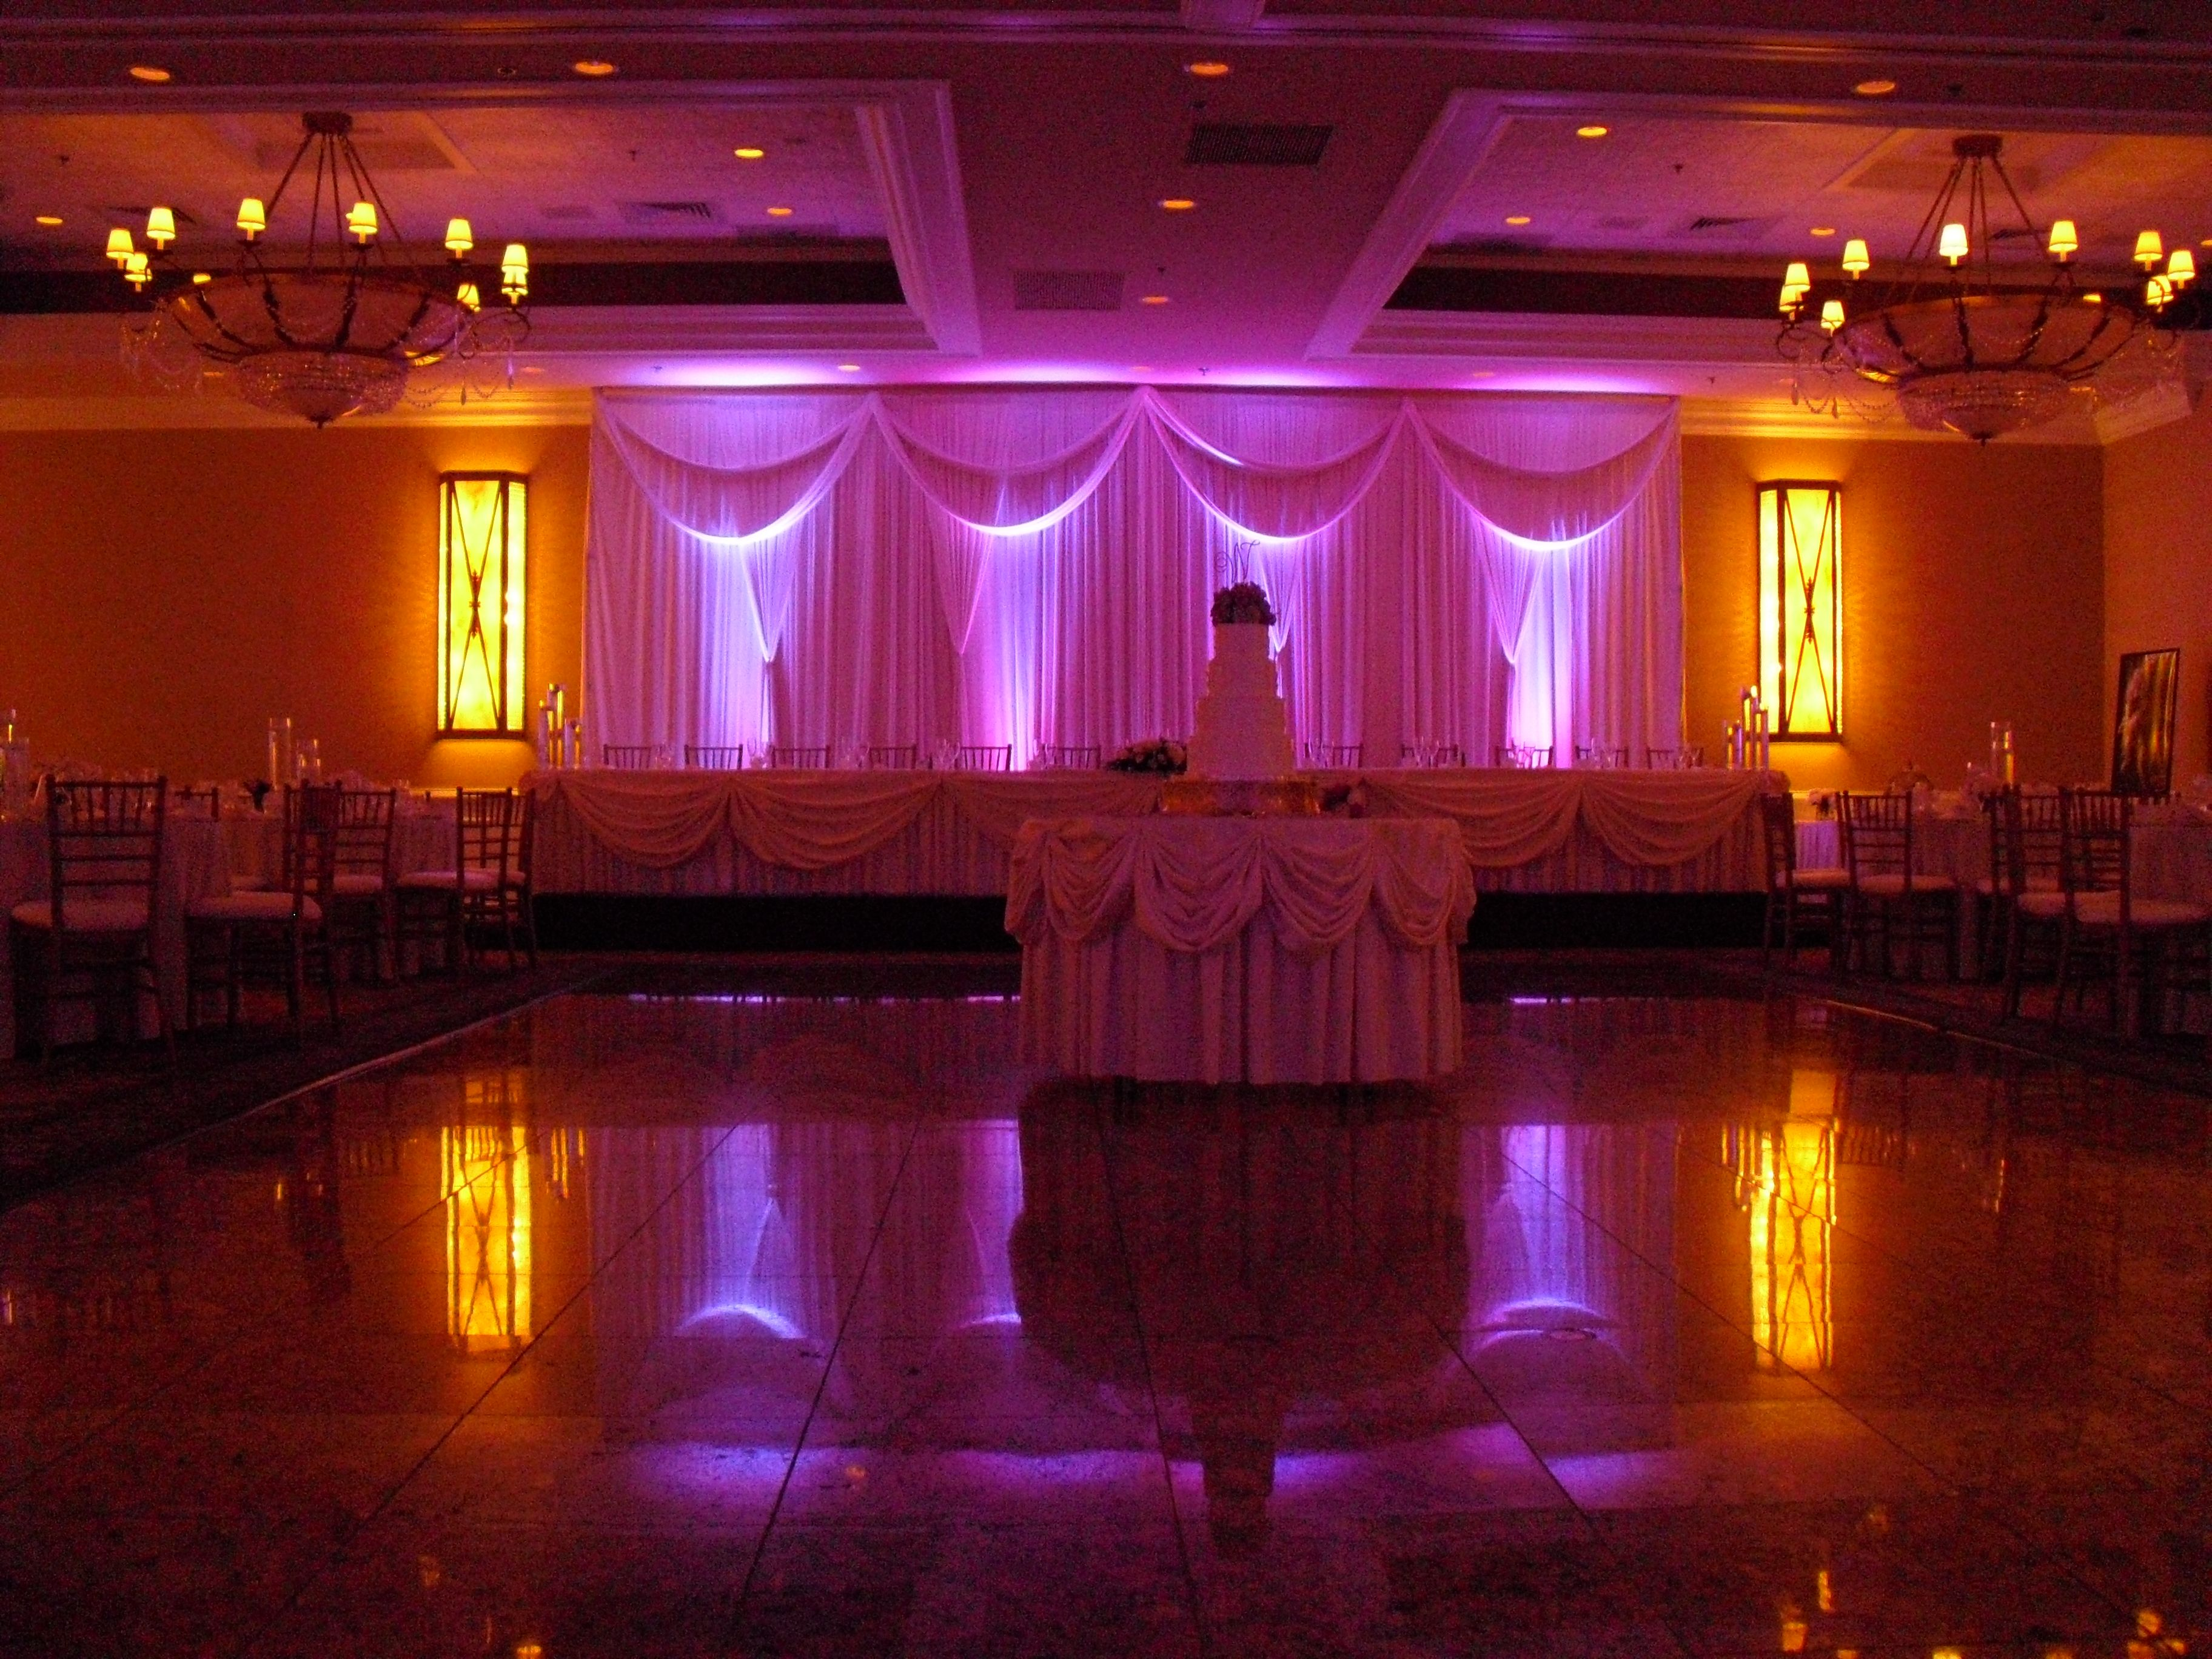 Wedding decor lighting at Concorde Banquets in Kildeer, IL ...